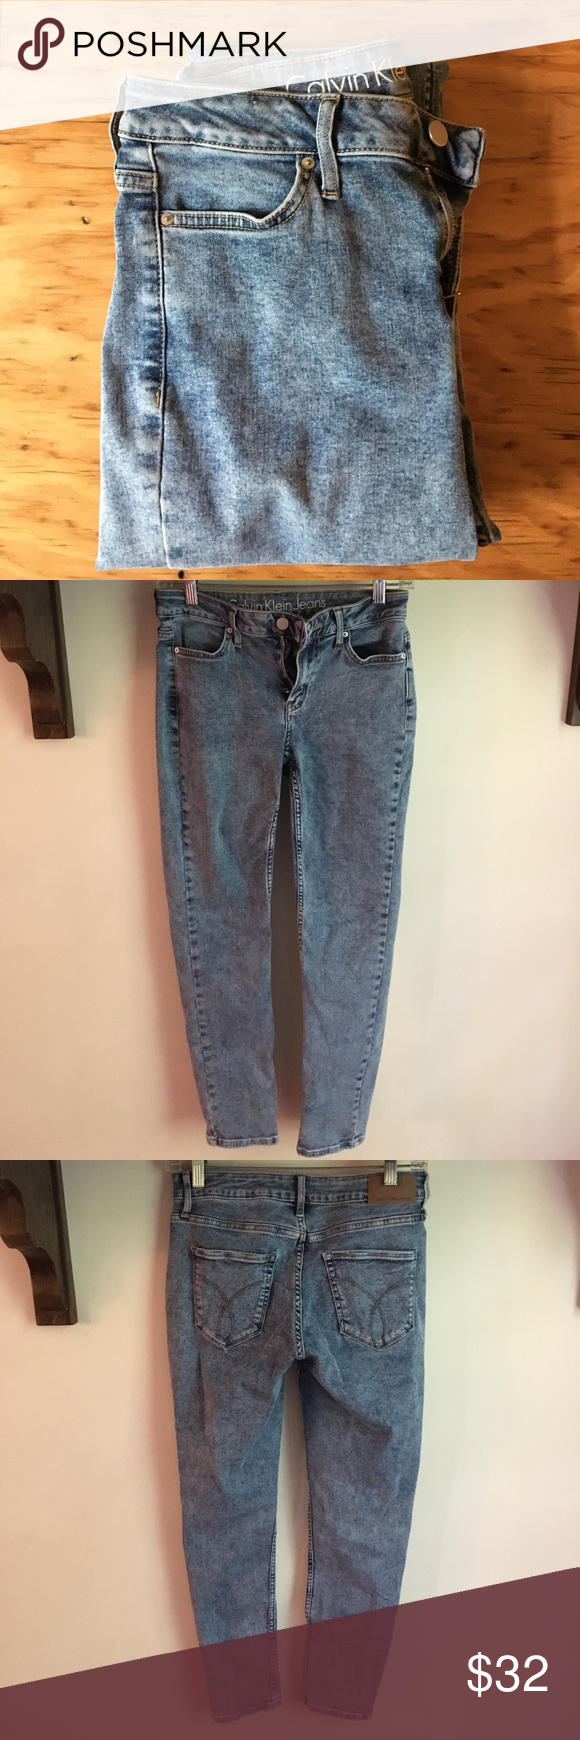 Calvin Klein high wasted jeans Light acid wash, stretchy, flattering fit. Great condition Calvin Klein Jeans Skinny